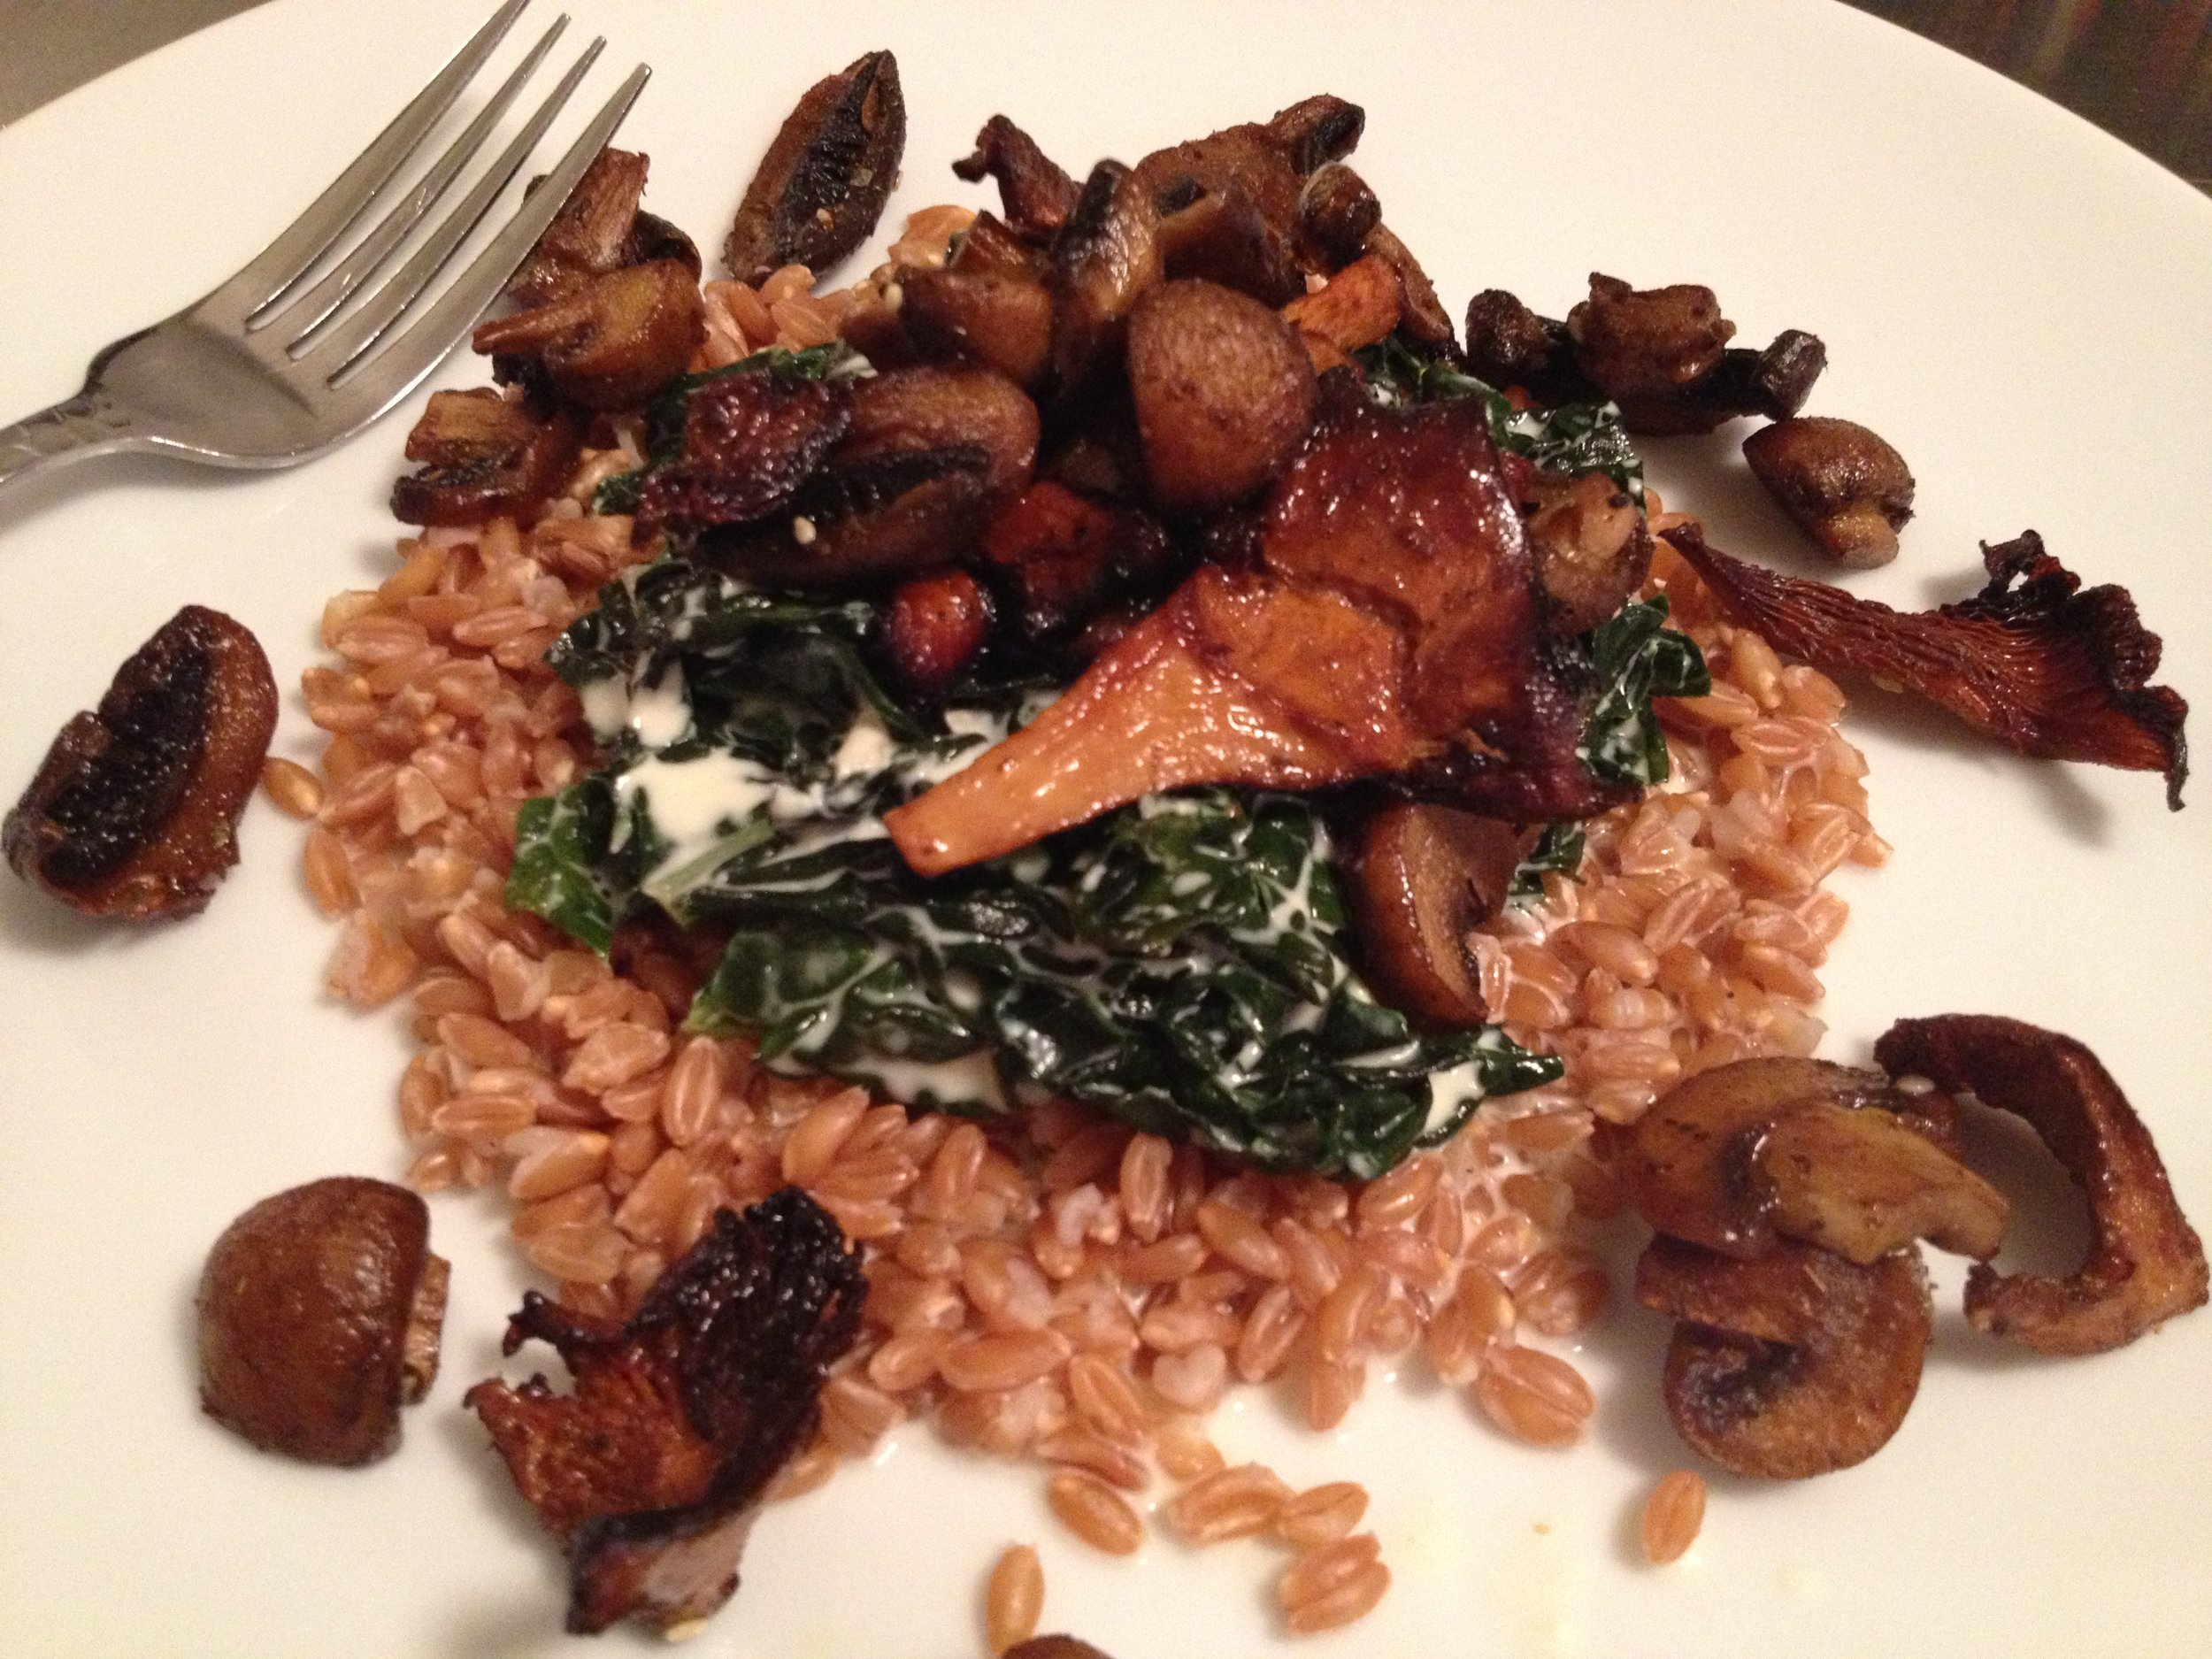 Roasted Zaatar Mushrooms; Creamed Kale with Garlic and Goat Cheese; and Faro